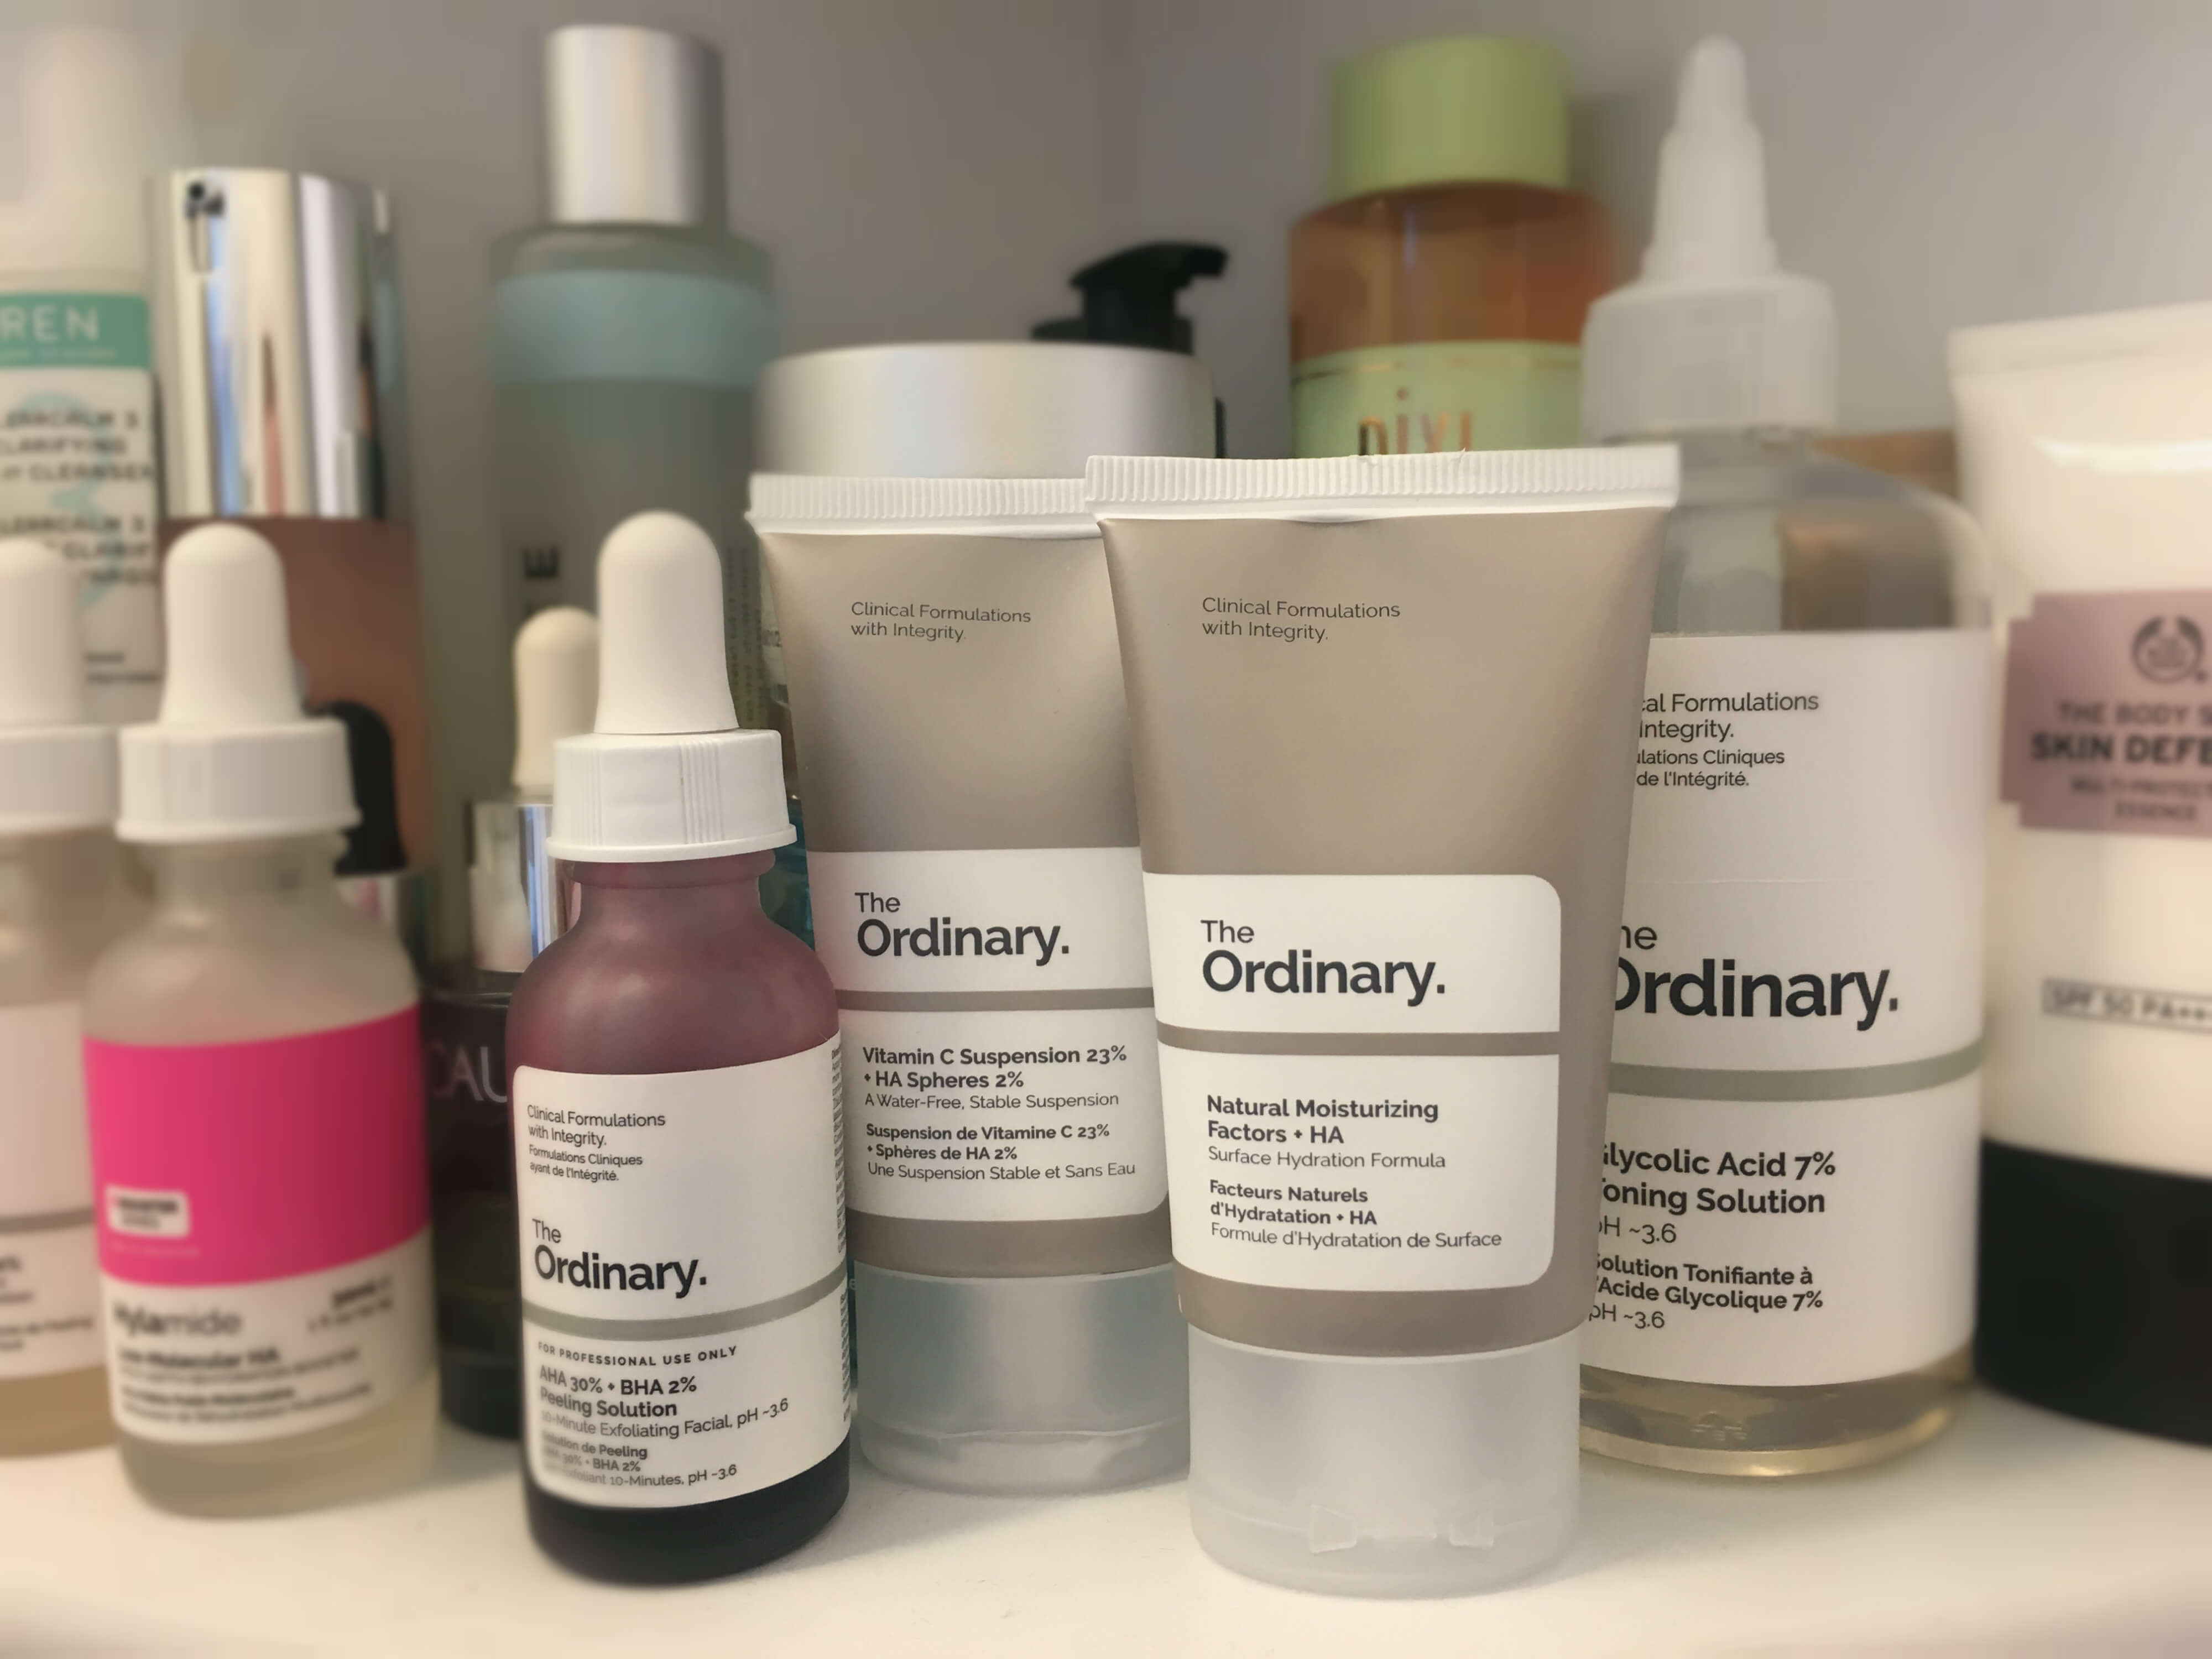 the ordinary bathroom